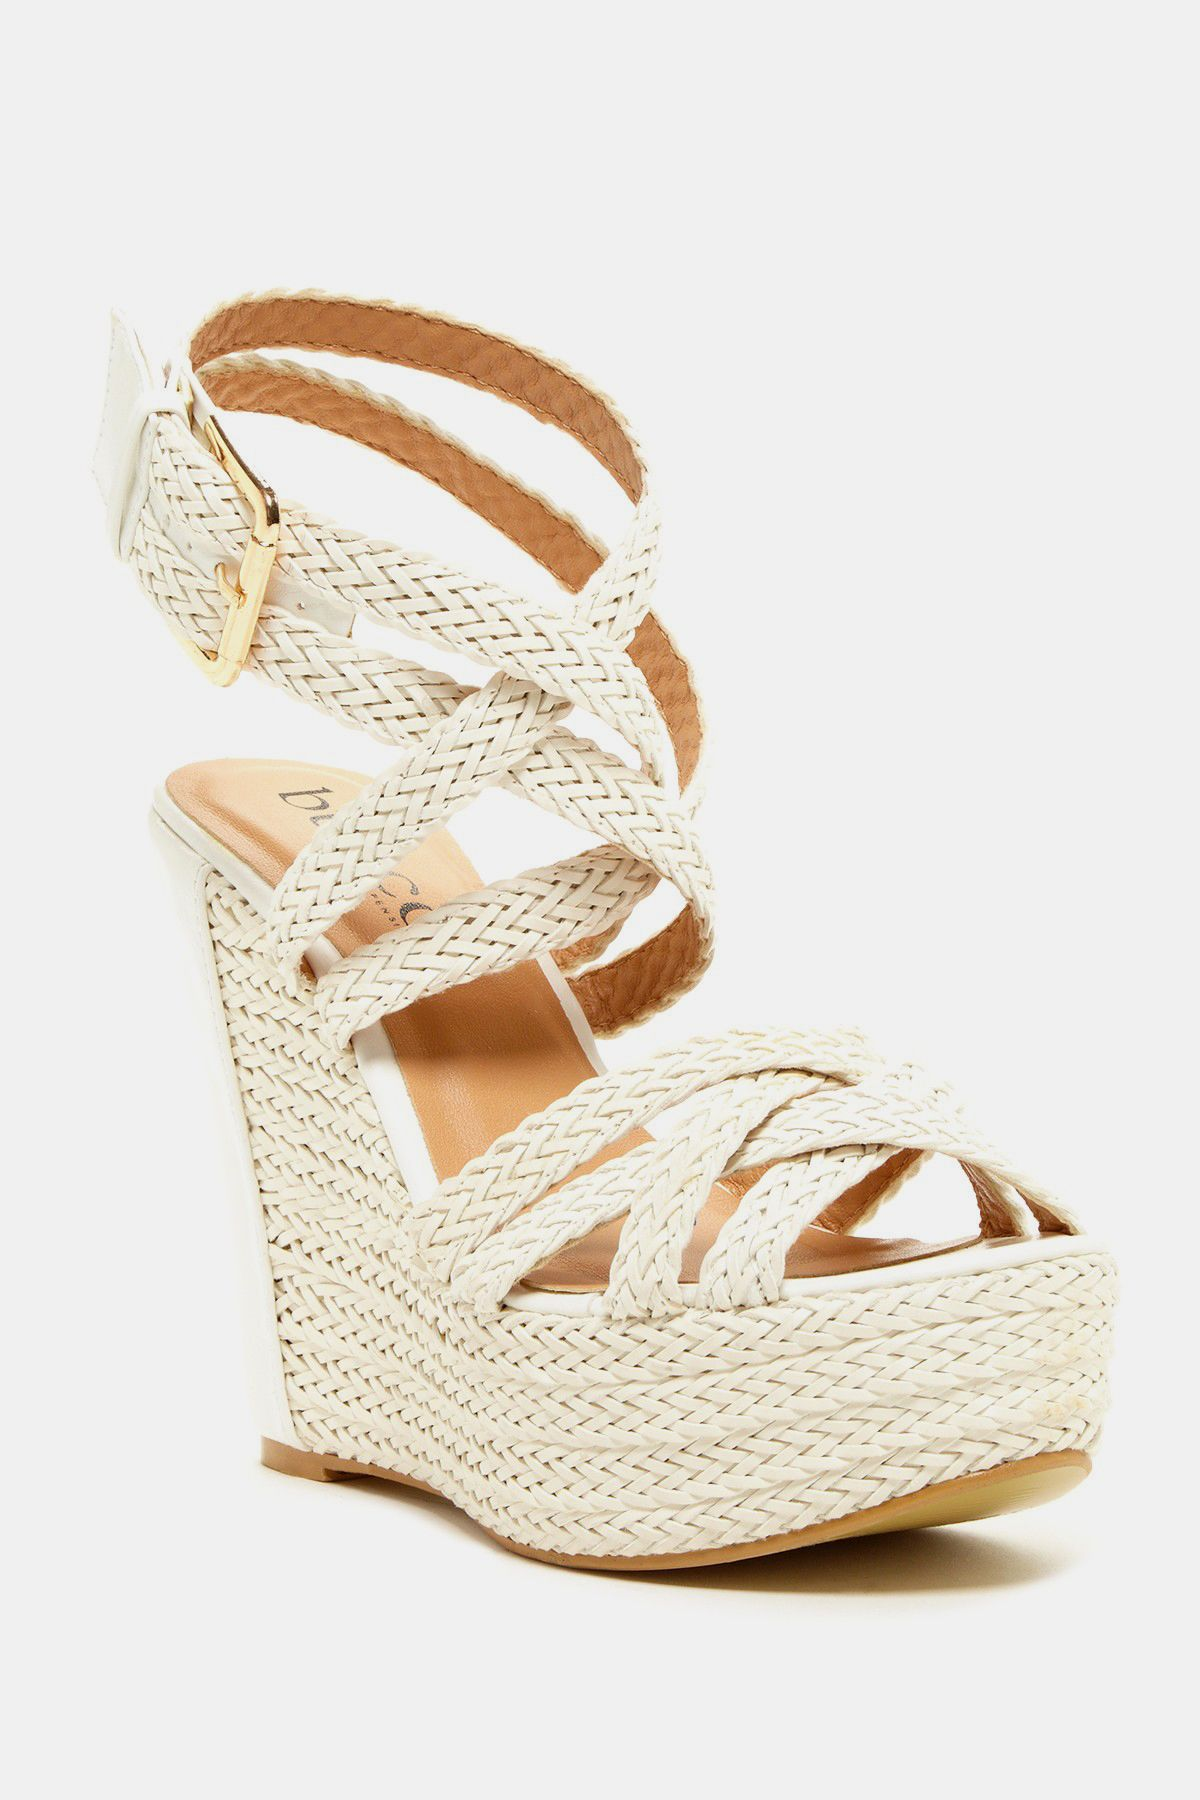 Bucco Shane Strappy Wedge Sandal Nordstrom Rack Another